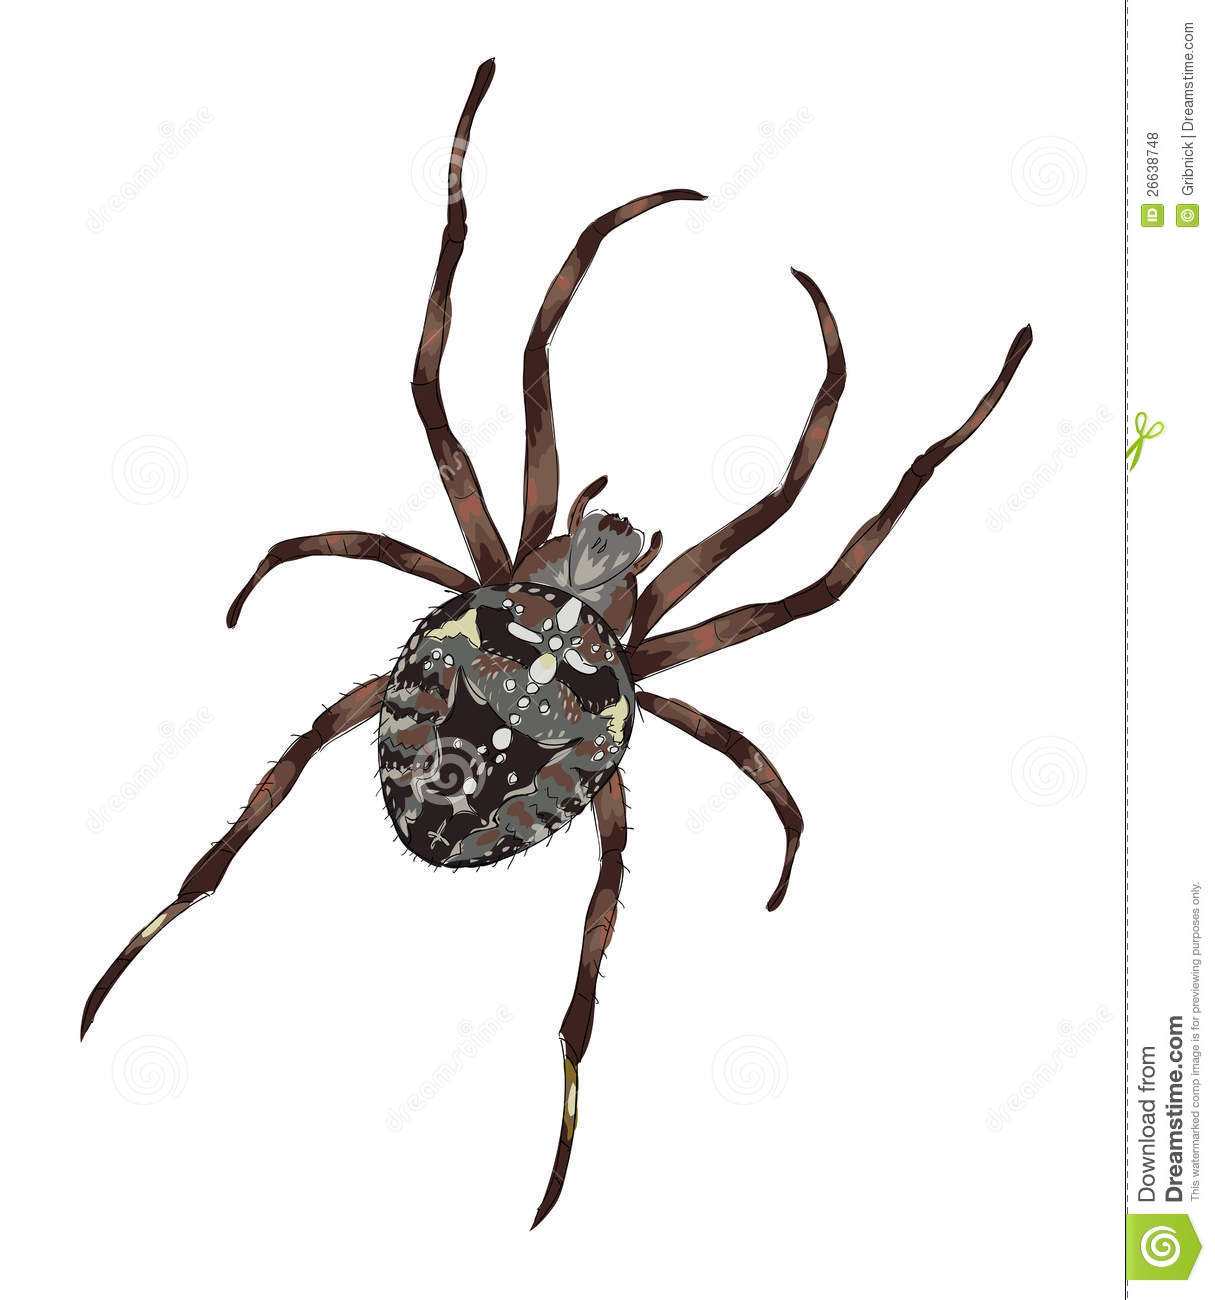 Big Spider With Cross Shaped Drawing On A Back Stock